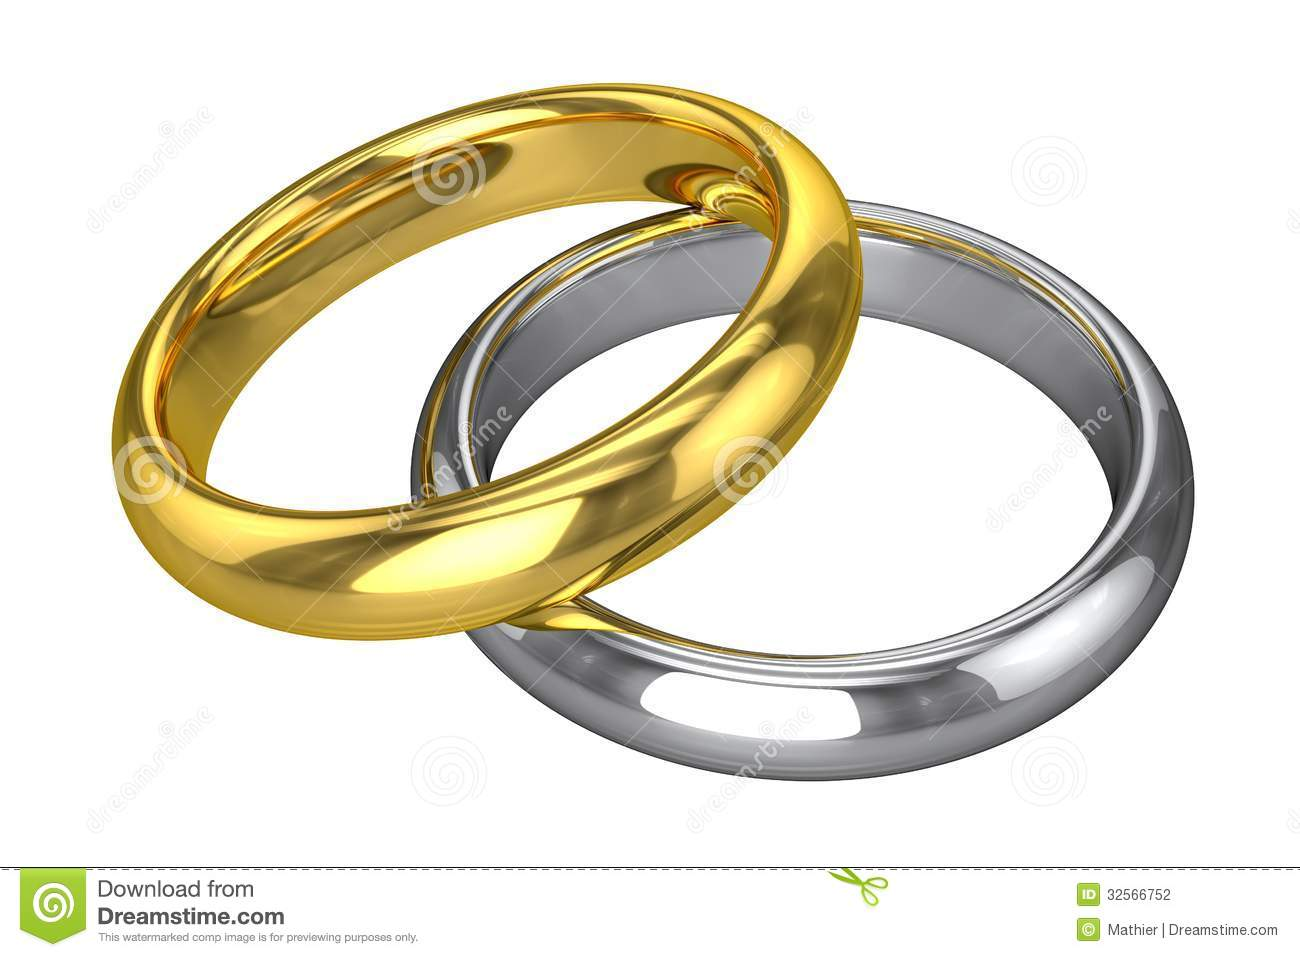 and clipart silver download rings band collection wedding free share cliparts